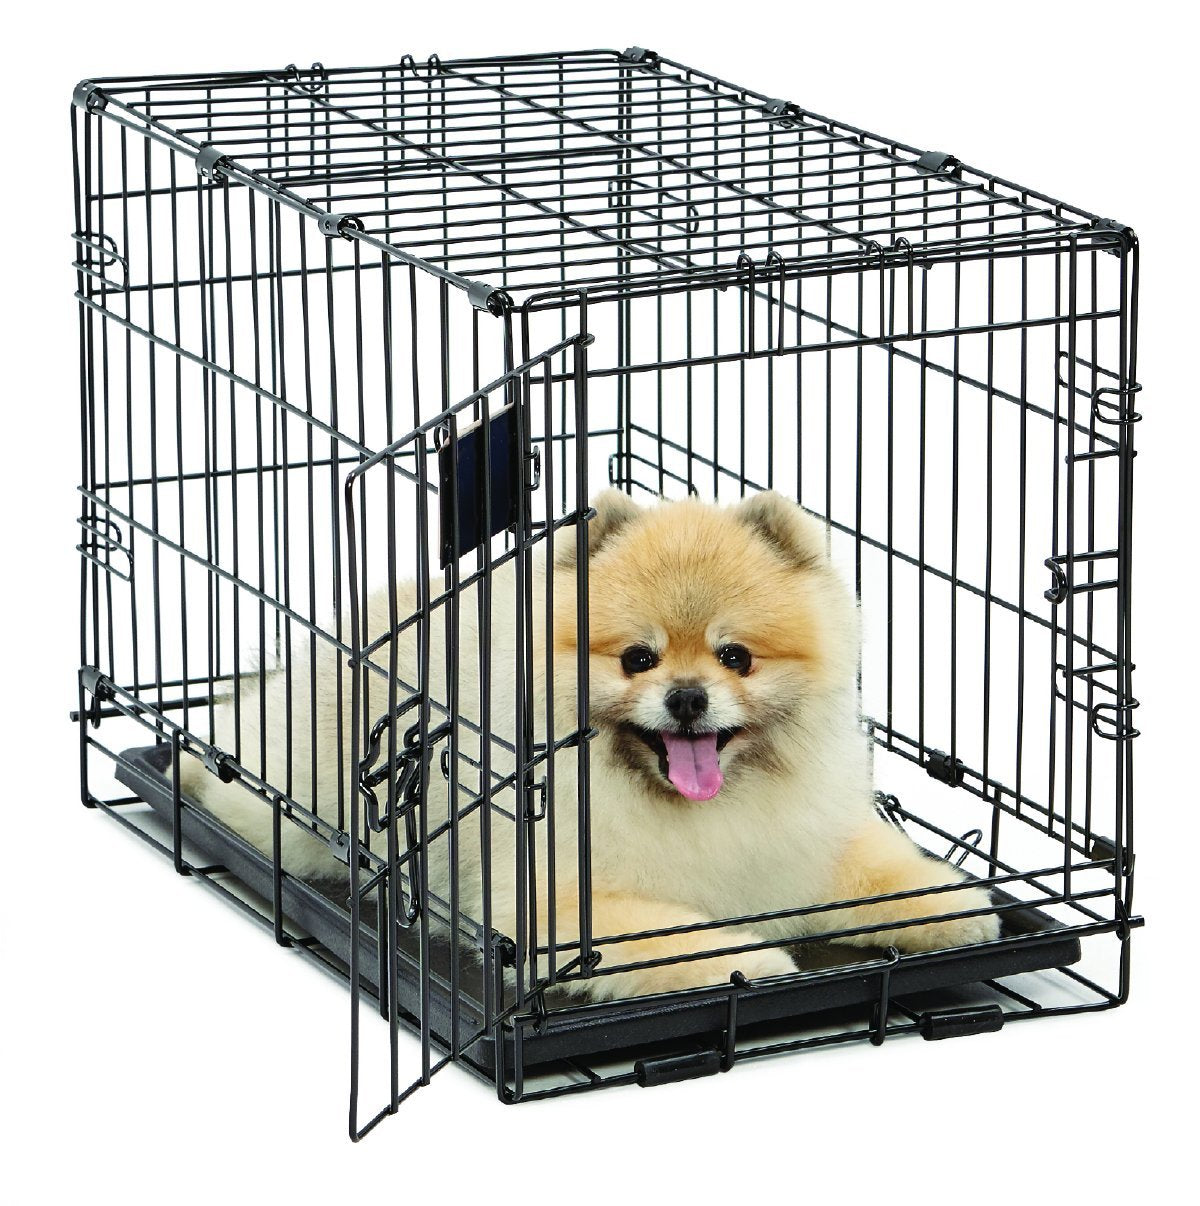 Midwest LS-1622 Life Stages Single Door Dog Crate from Midwest